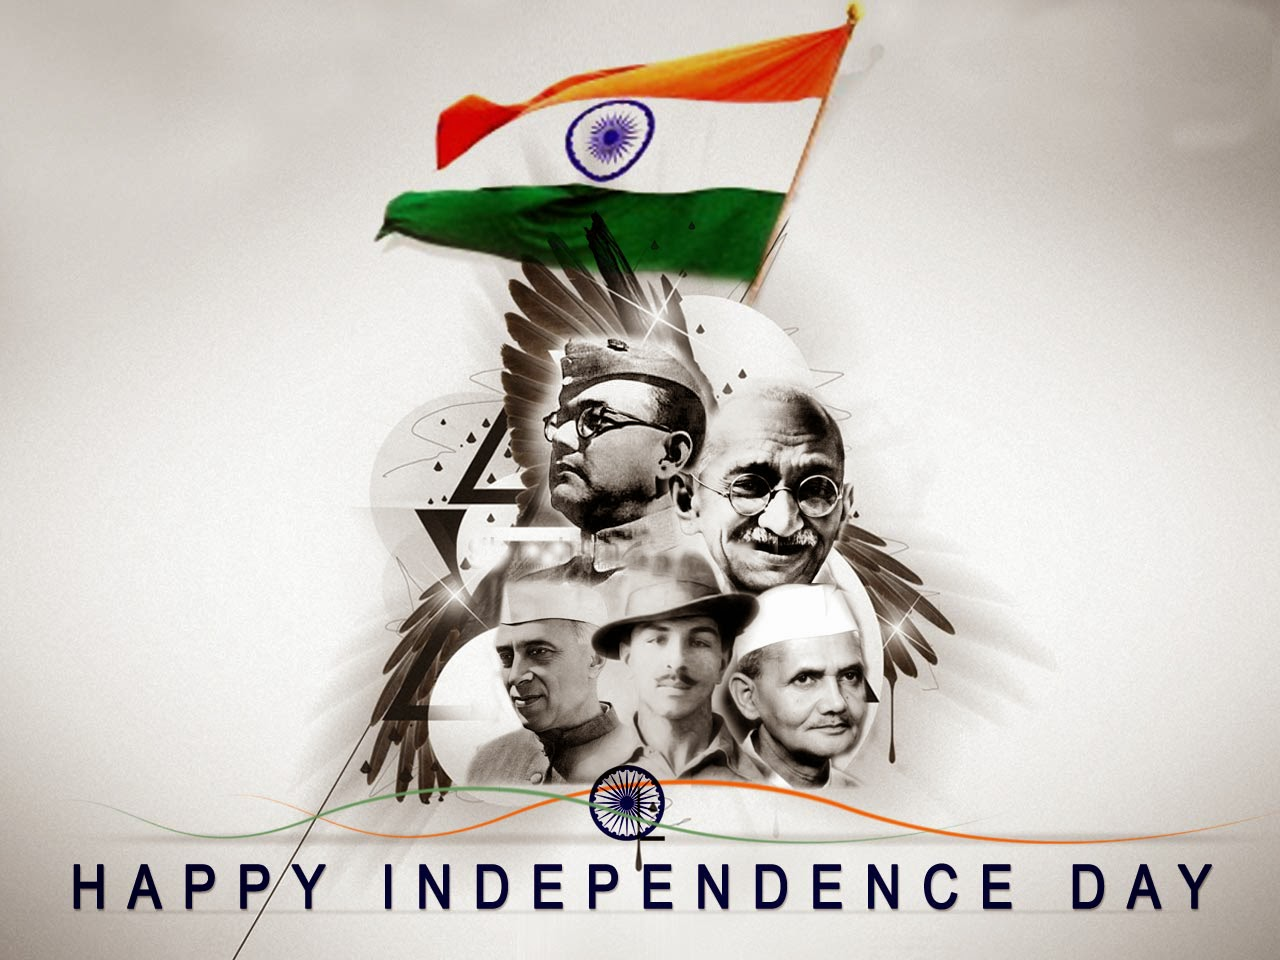 happy independence day 2014 sms msgs: 2014 independence day